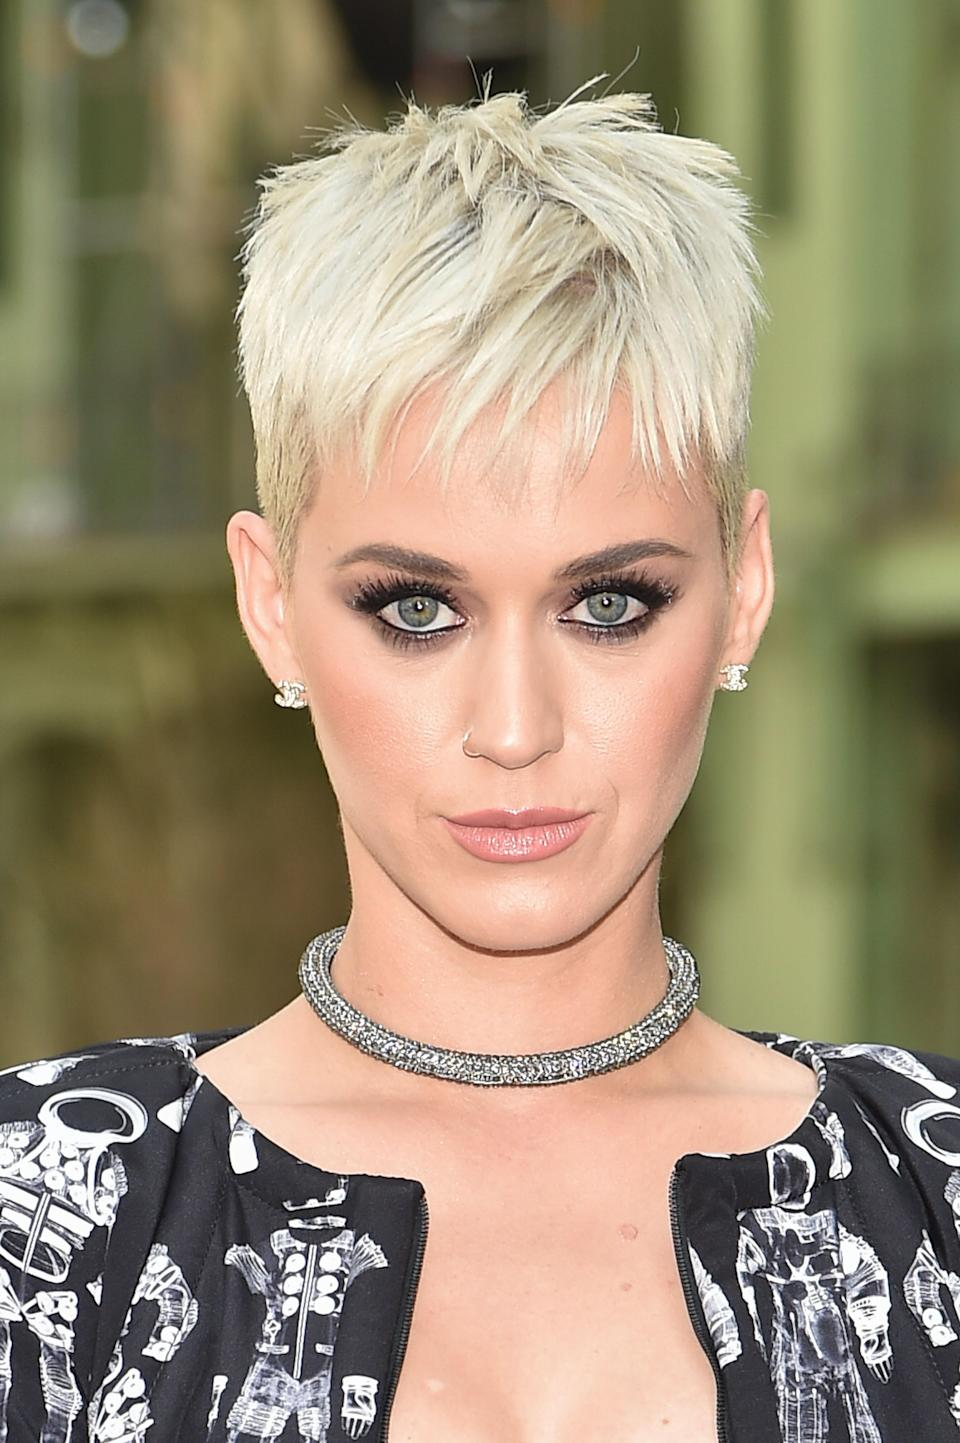 "Perry's platinum crop <a href=""https://www.glamour.com/story/katy-perry-ellen-platinum-pixie-reveal?mbid=synd_yahoo_rss"" rel=""nofollow noopener"" target=""_blank"" data-ylk=""slk:may not have been her original plan"" class=""link rapid-noclick-resp"">may not have been her original plan</a>, but it suits her so well."